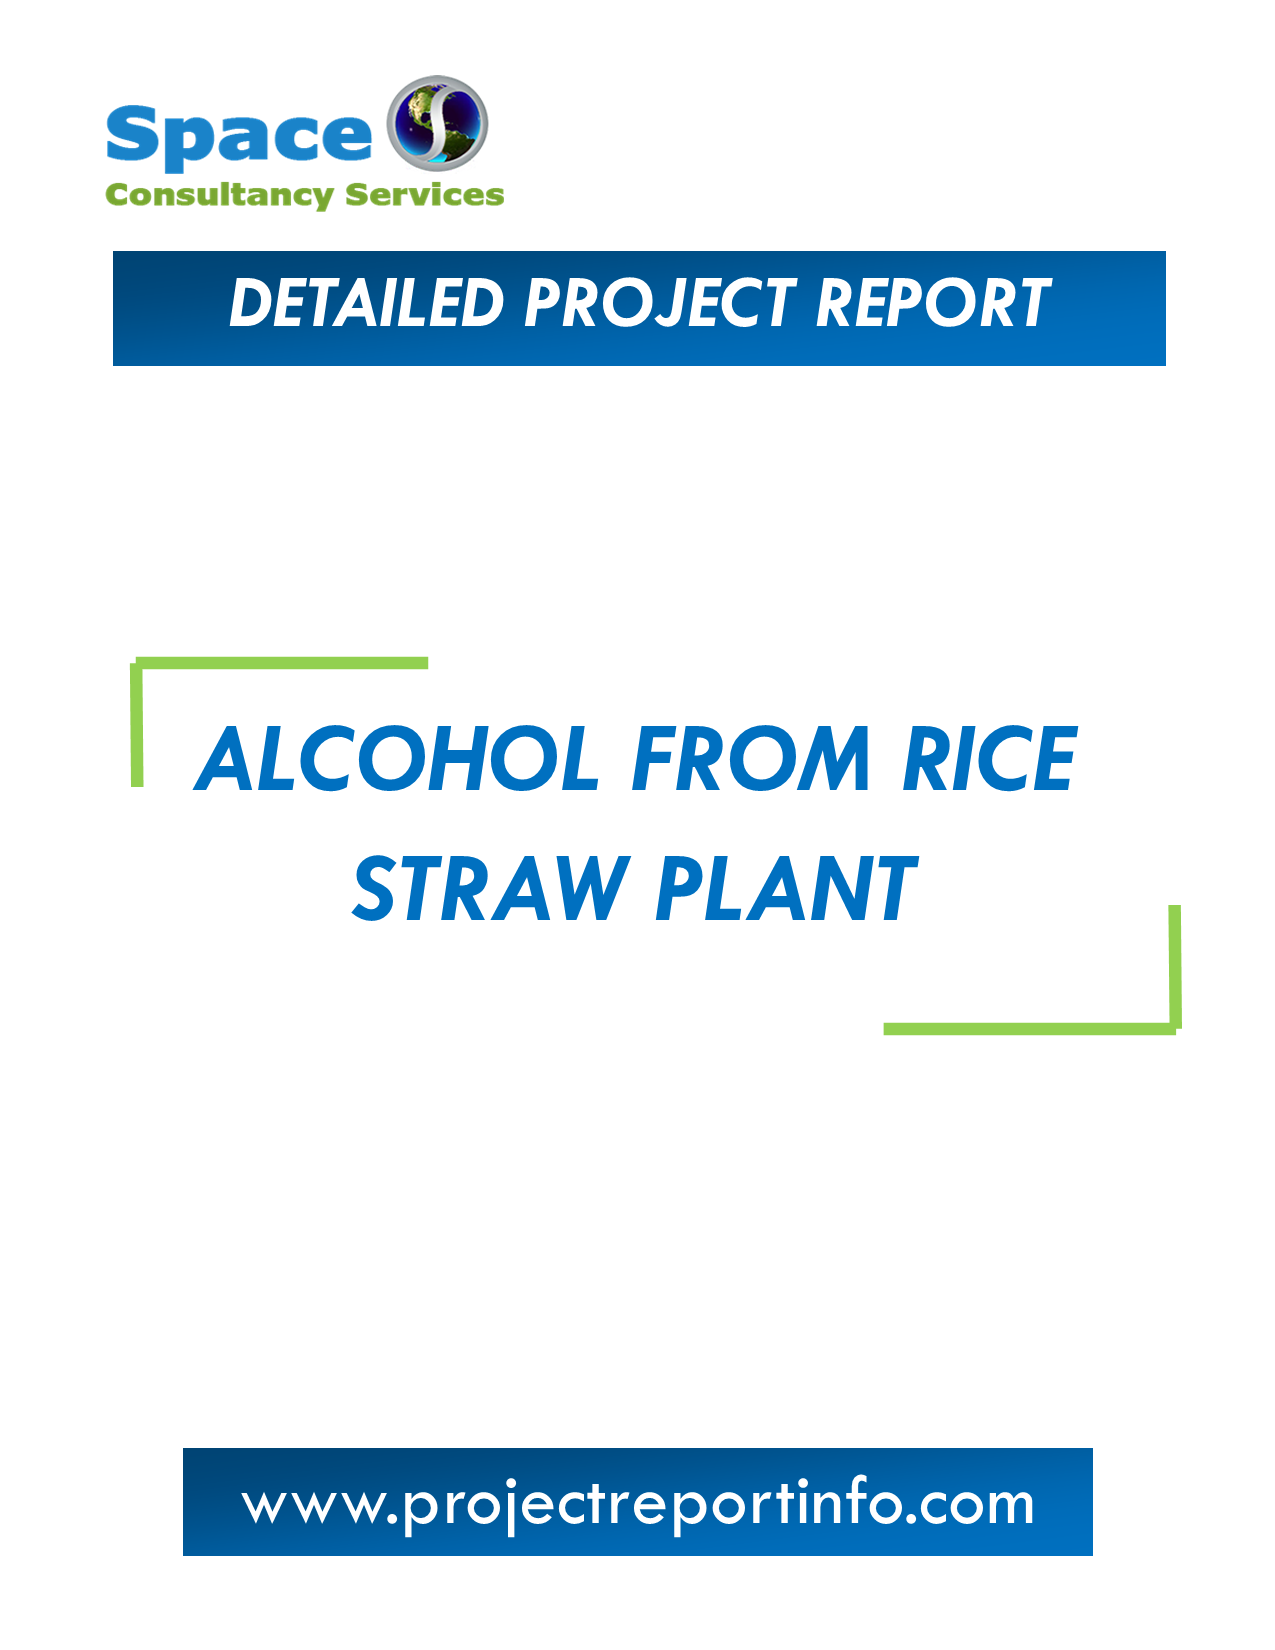 Project Report on Alcohol from Rice Straw Plant